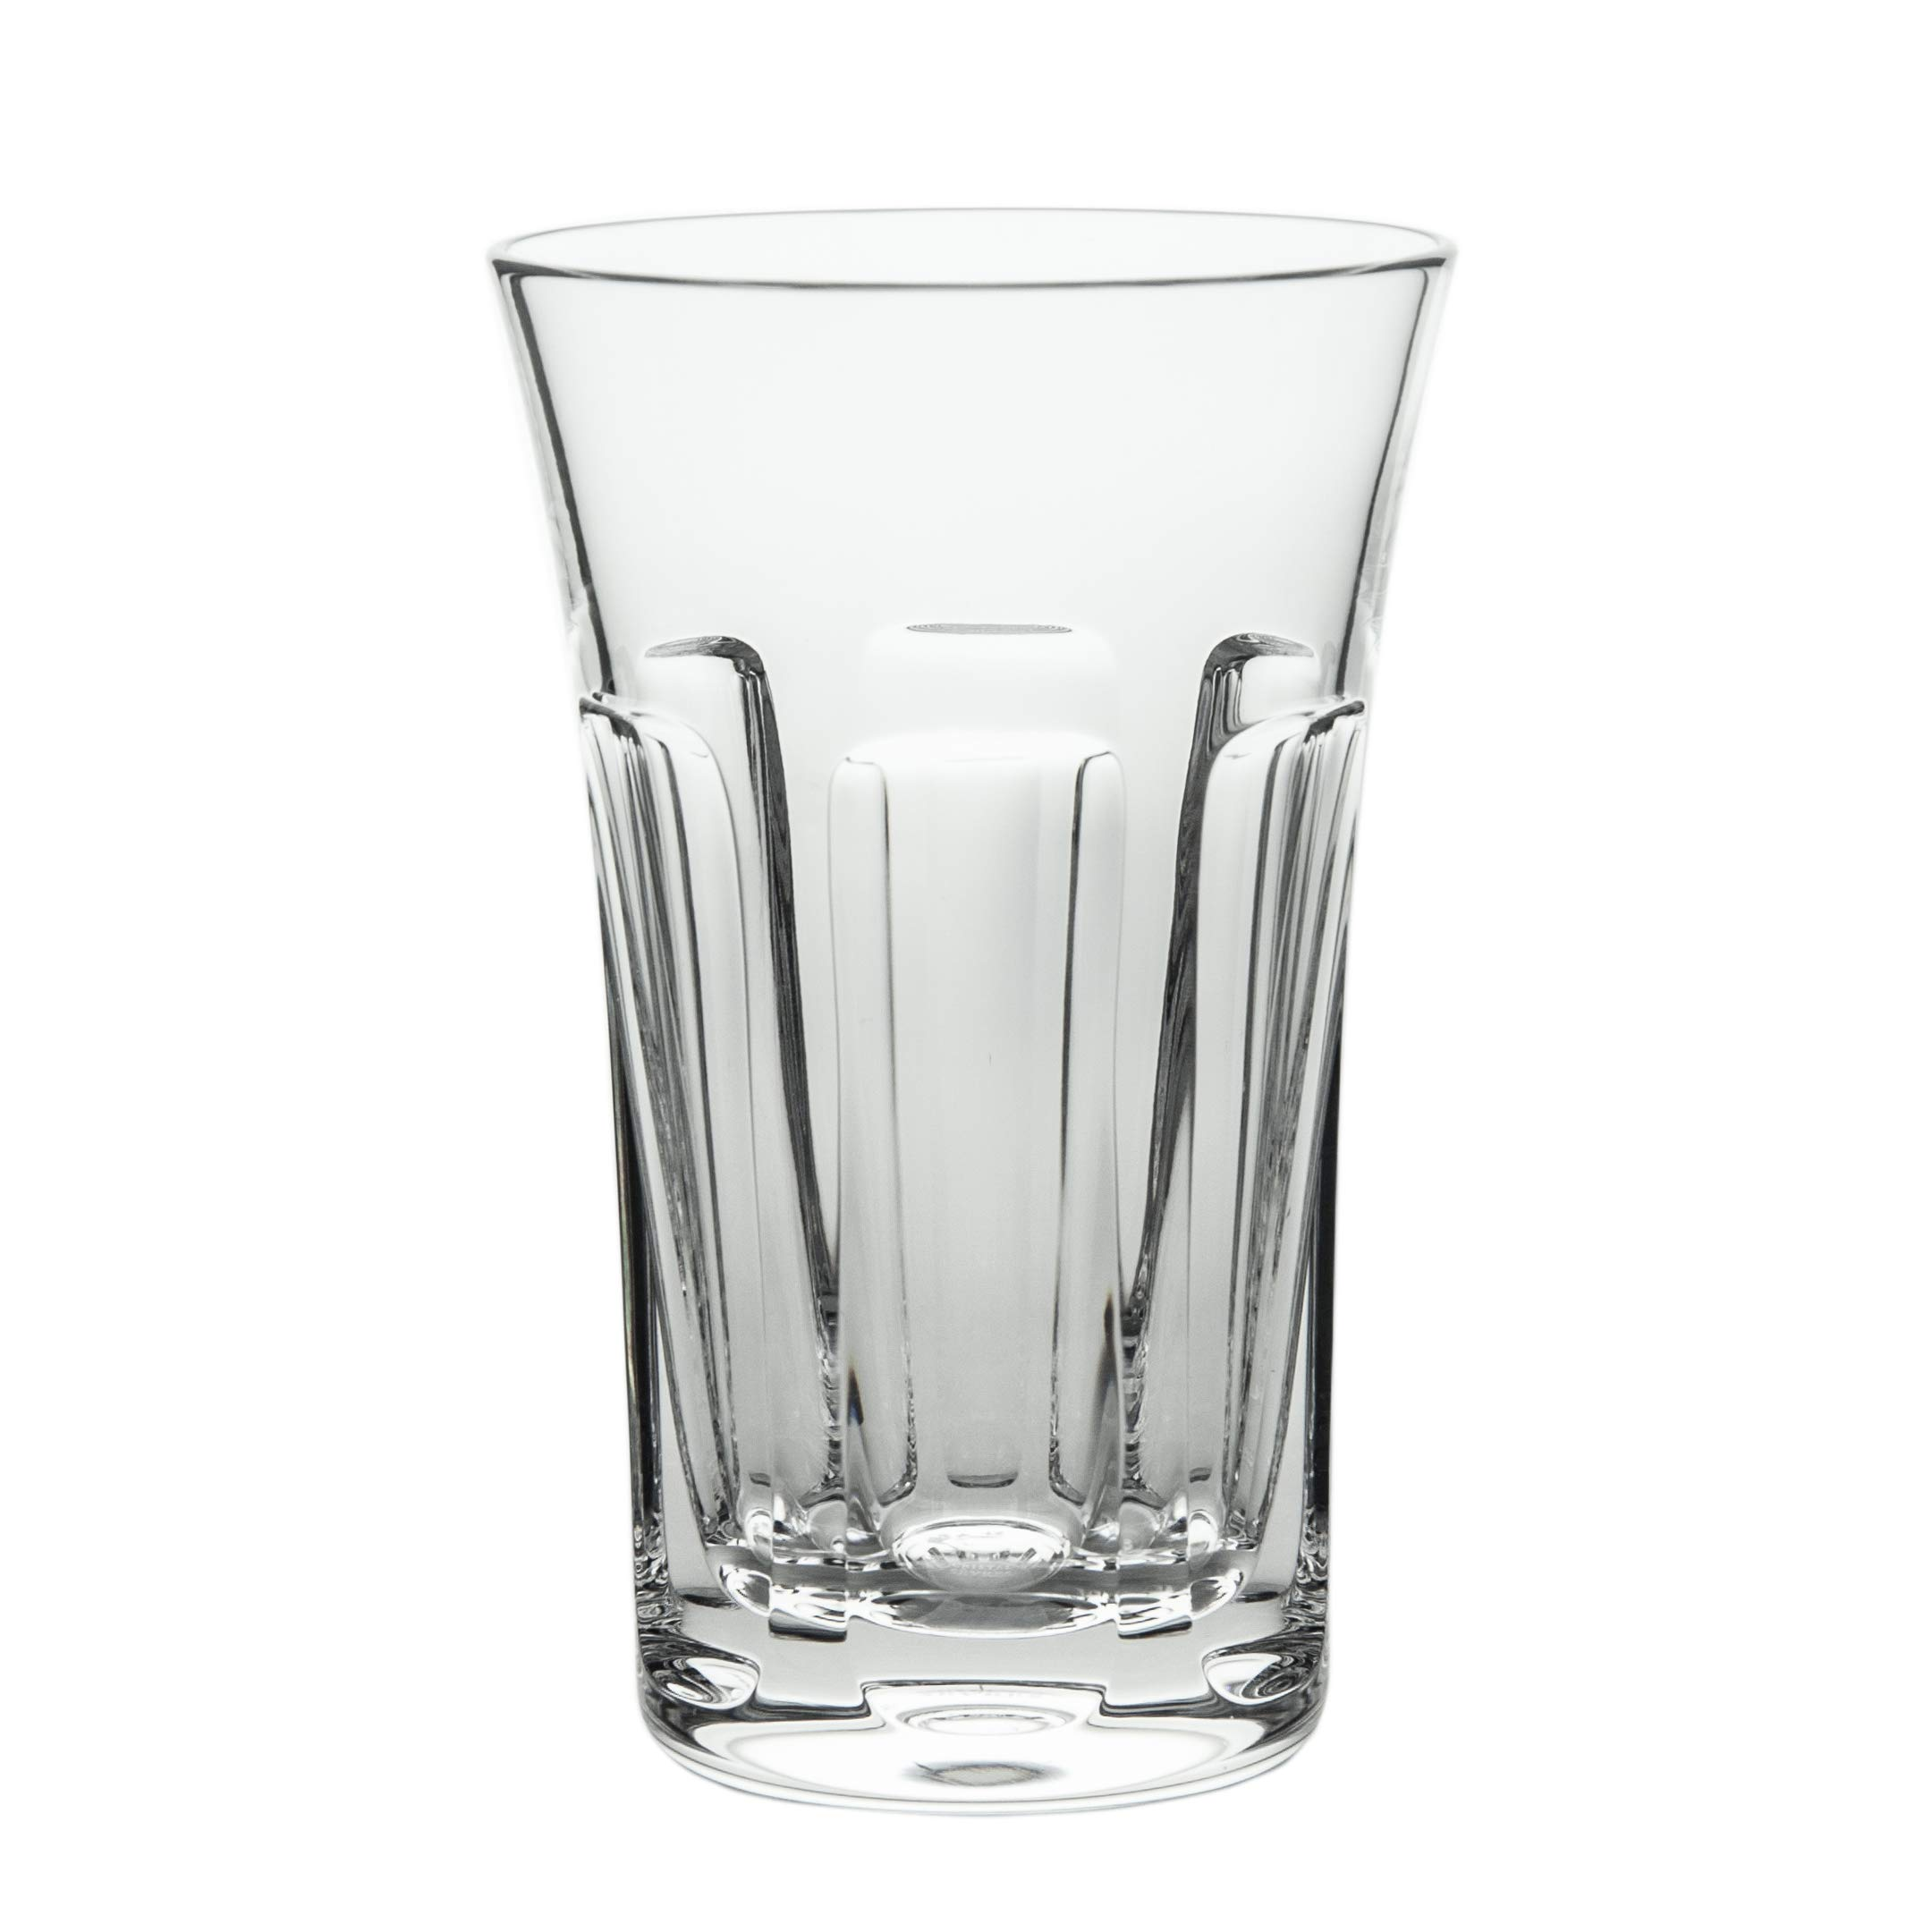 Sèvres 70385-00 Chope Orangeade Segovie Glass, Glass